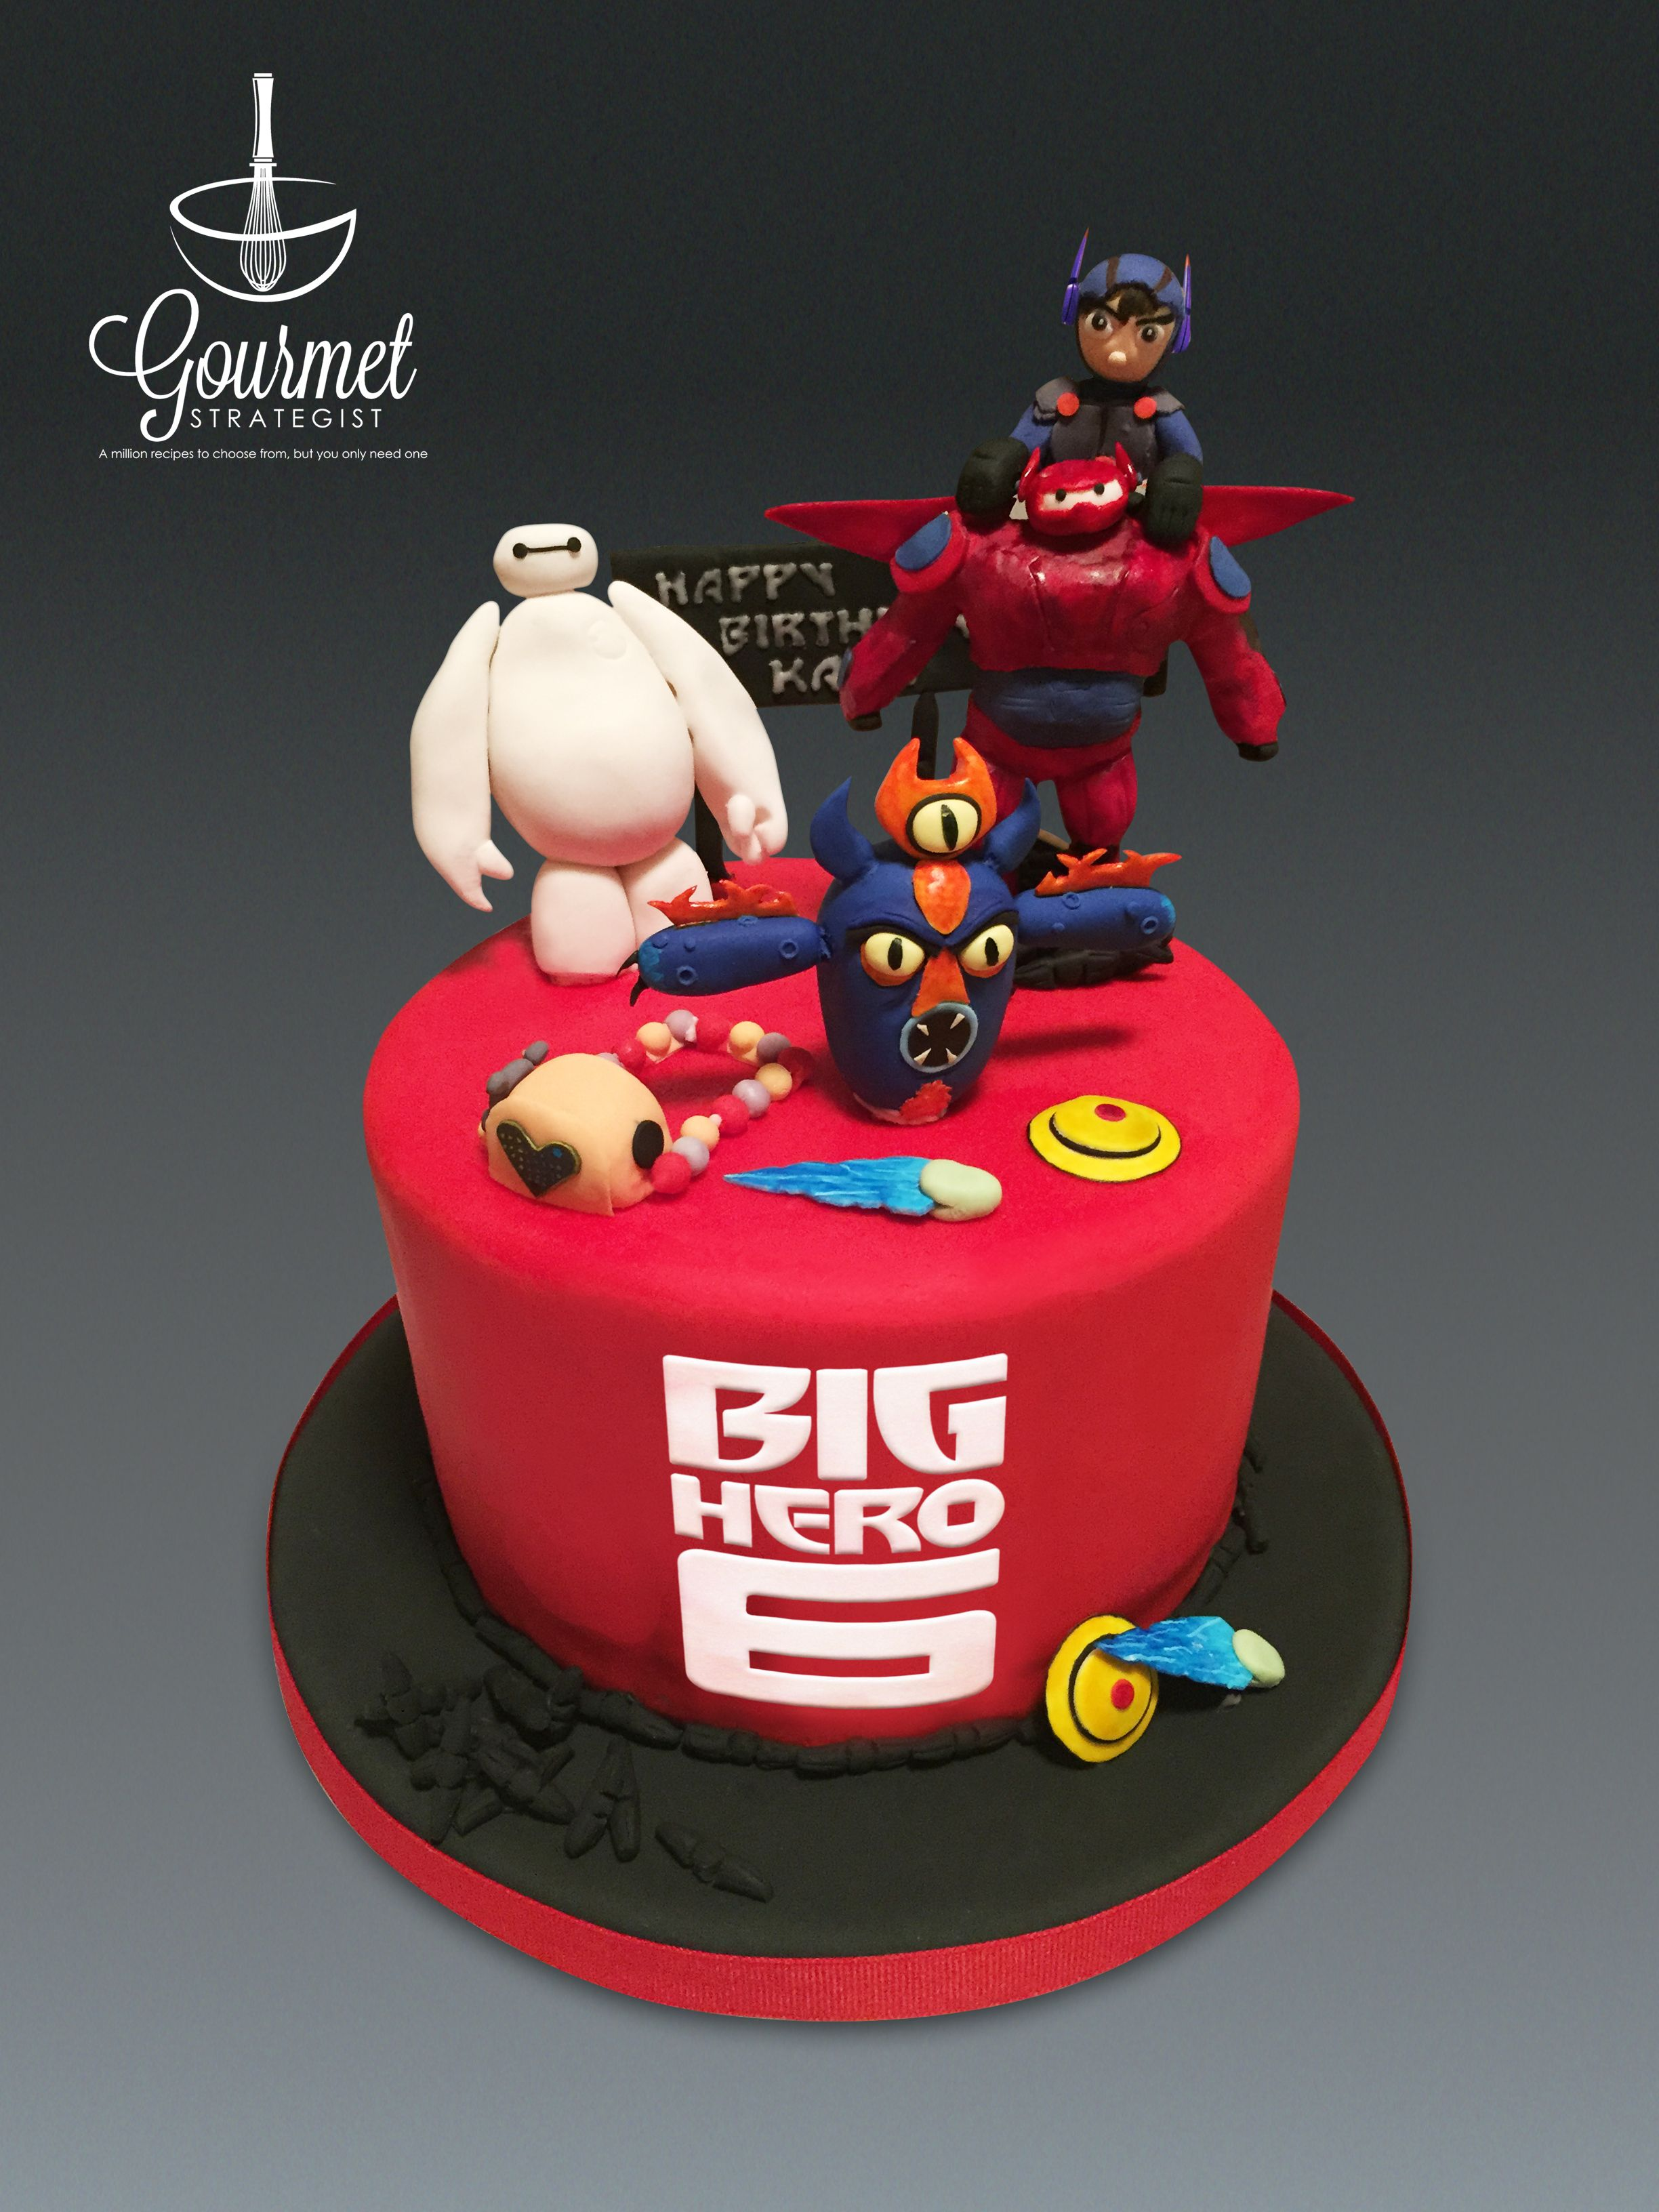 Big Hero 6 cake with Baymax Hiro Fred and the powers of other